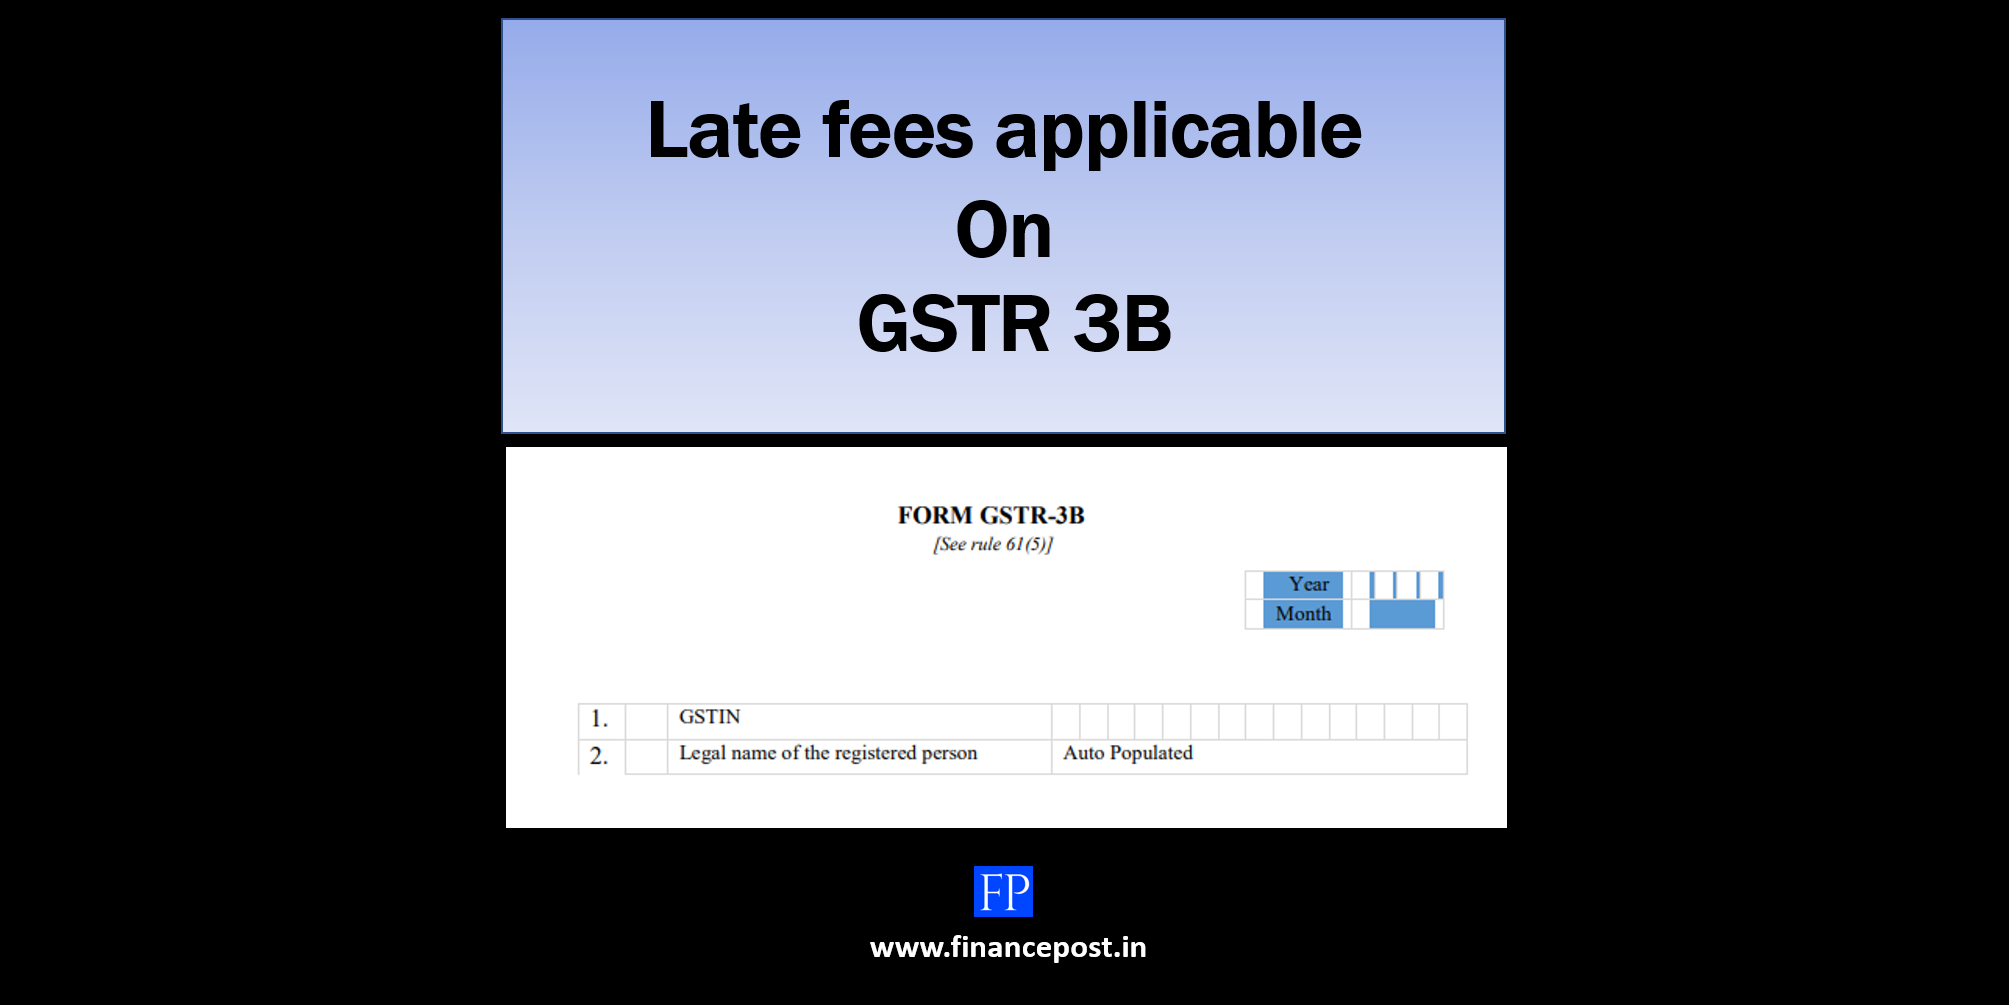 late fees applicable on gstr 3b